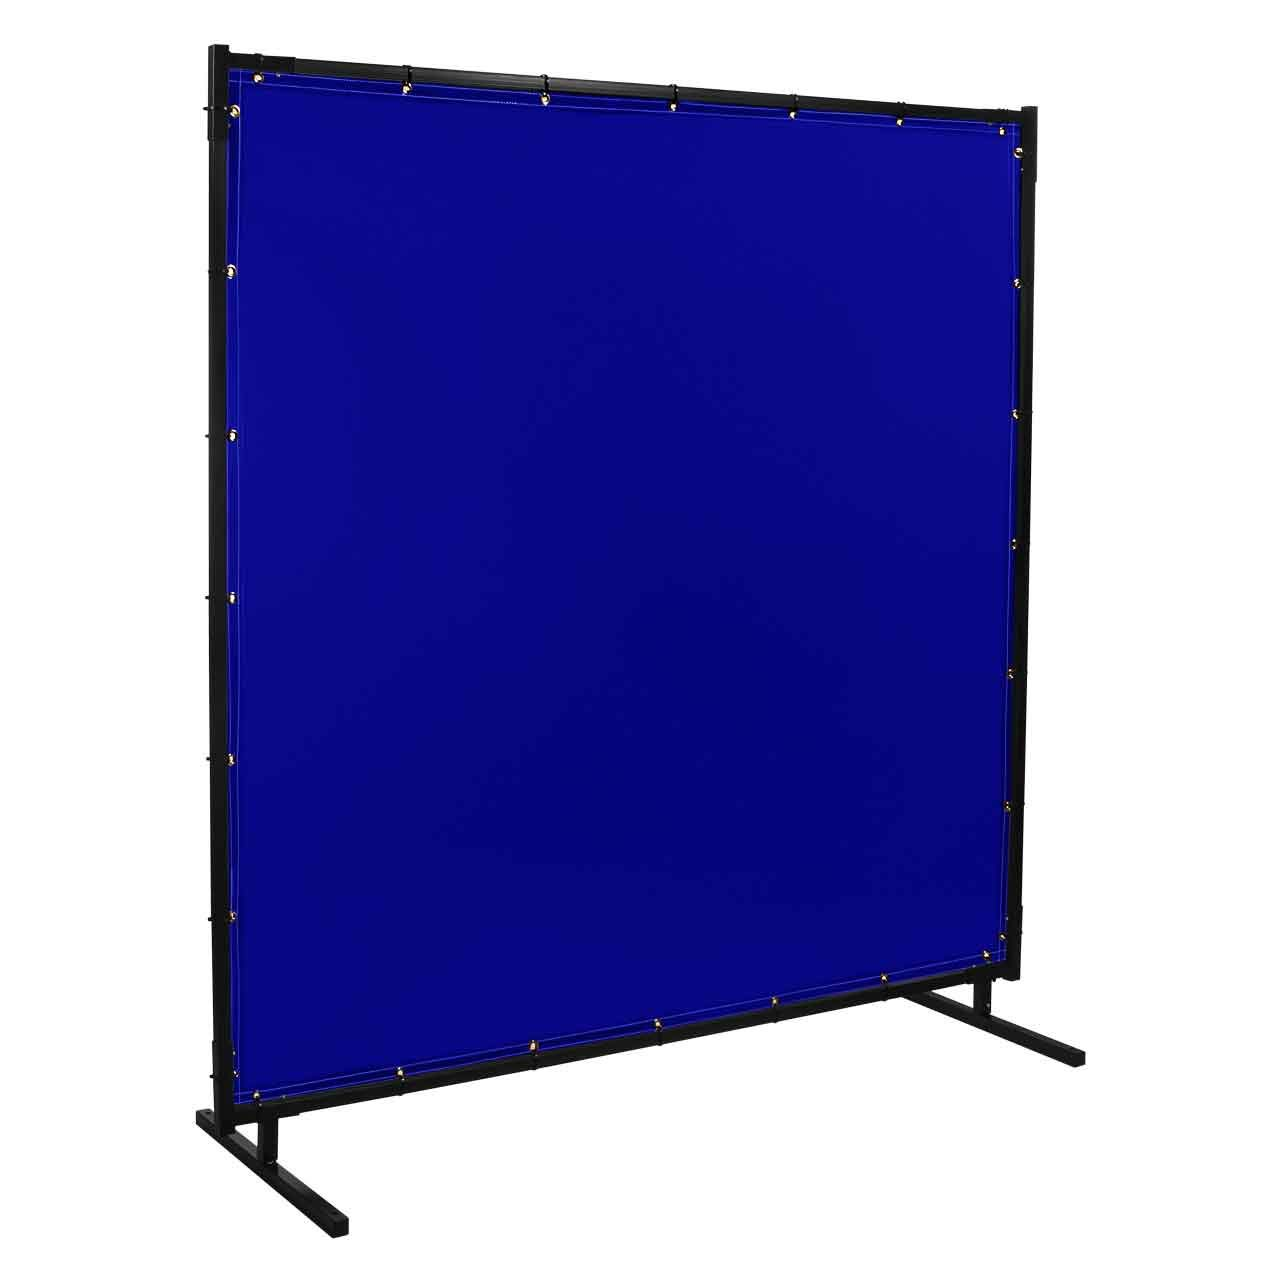 Steiner 525HD-8X8 Protect-O-Screen HD Welding Screen with Flame Retardant 14 Mil Tinted Transparent Vinyl Curtain, Blue, 8' x 8' by Steiner